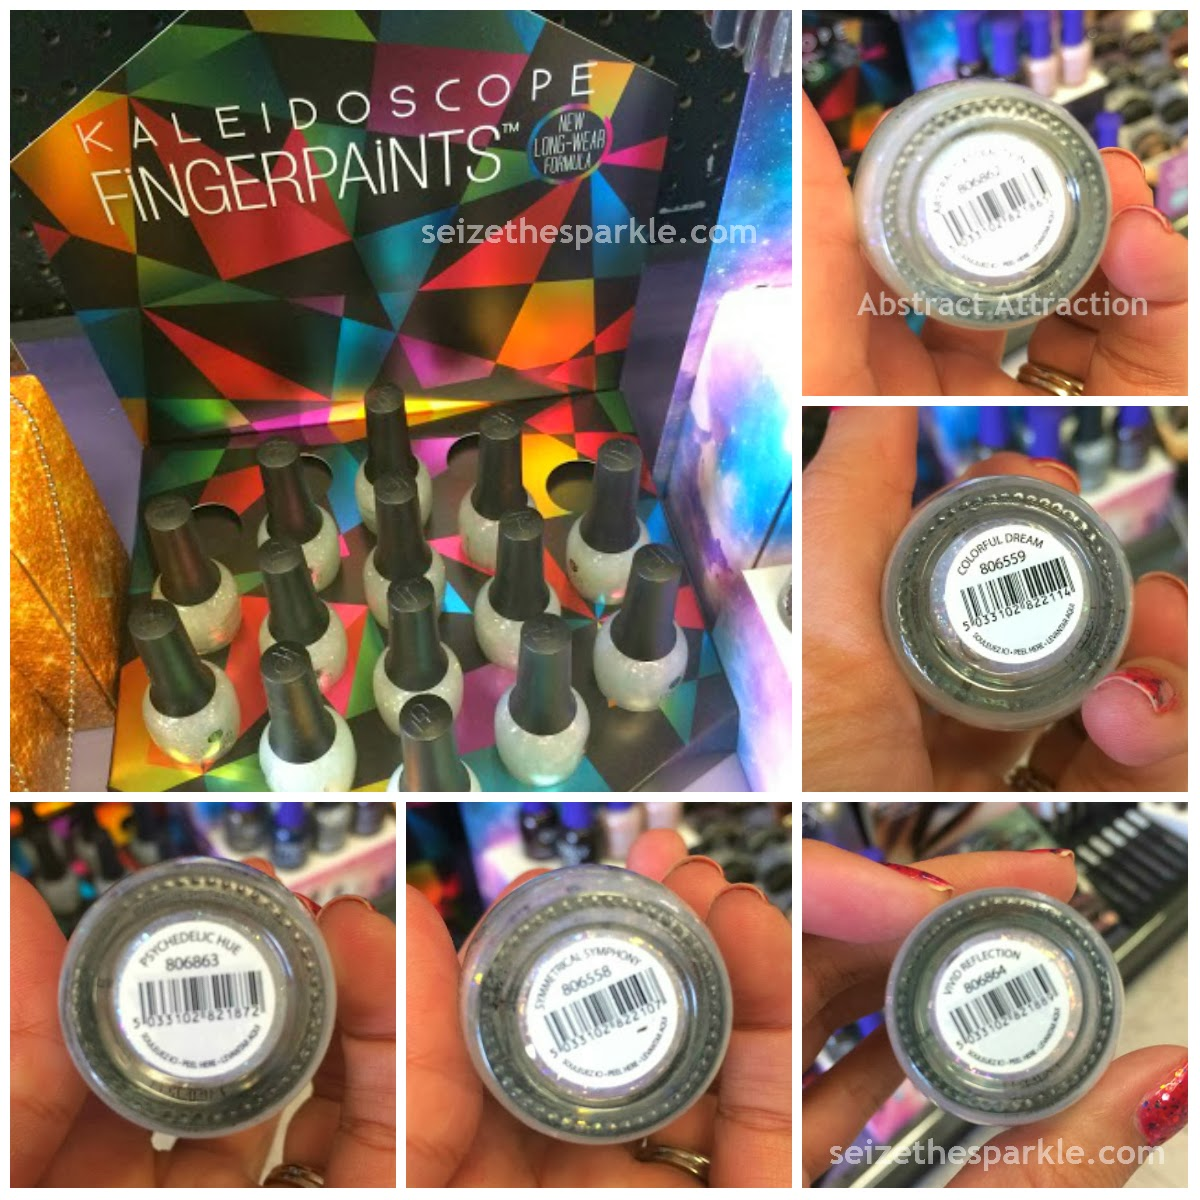 FingerPaints Kaleidoscope Collection